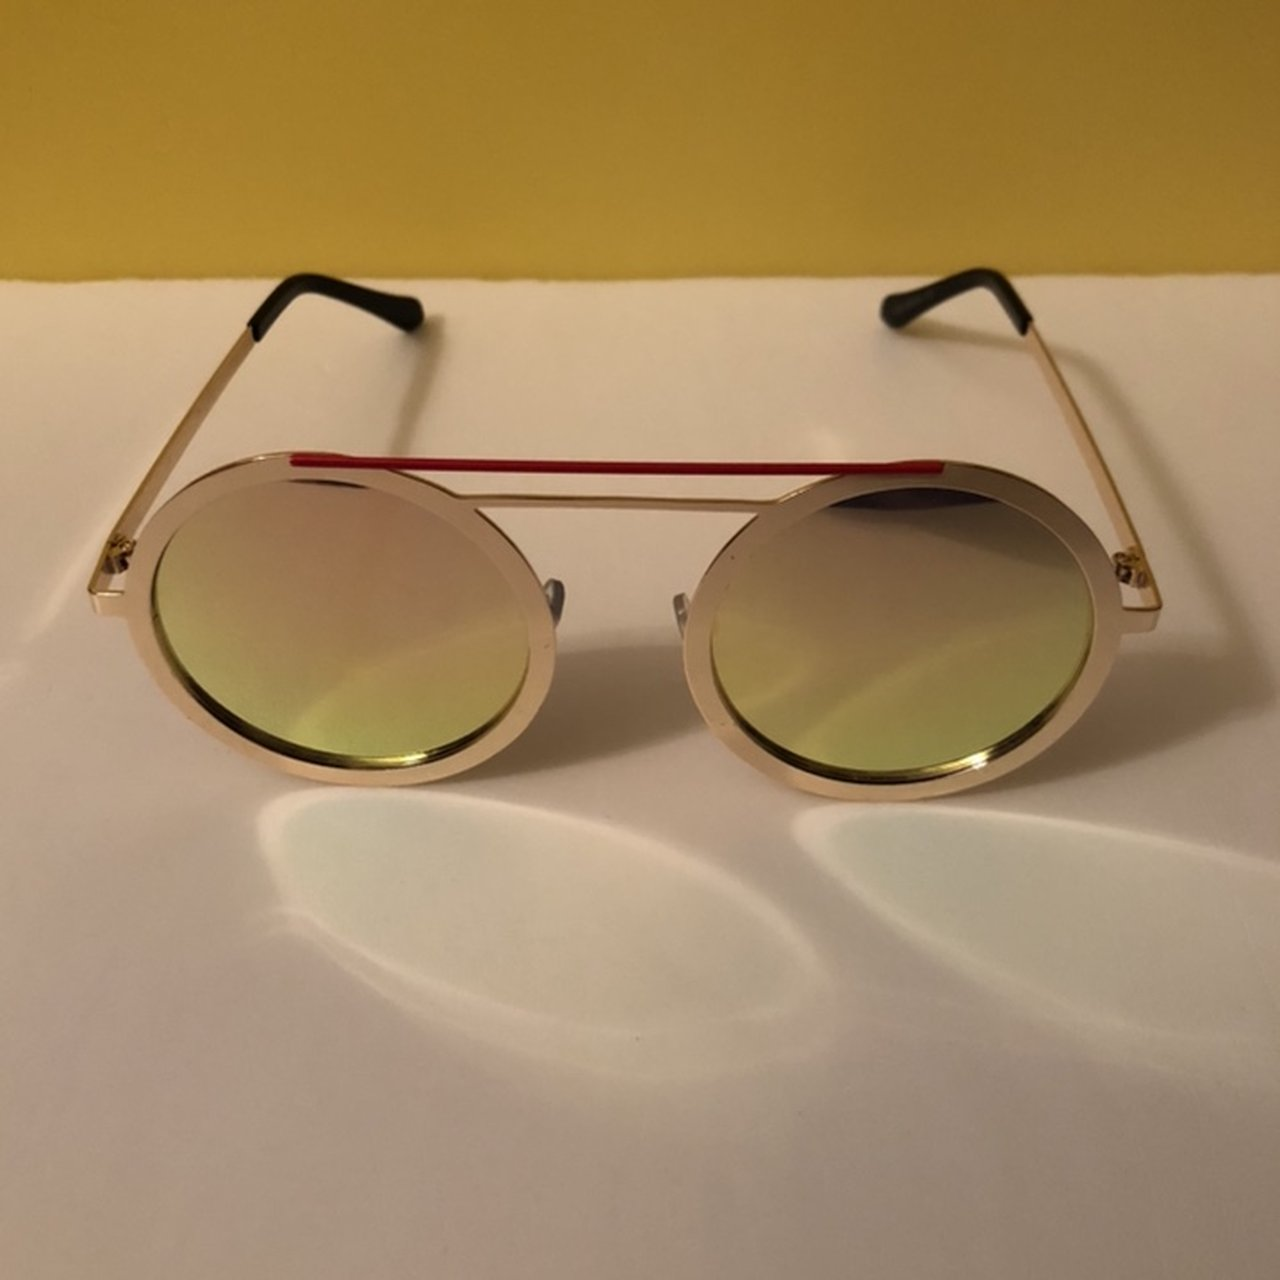 7b90b3188f Round fashion sunglasses Gold metal frame. Pink tinted on - Depop